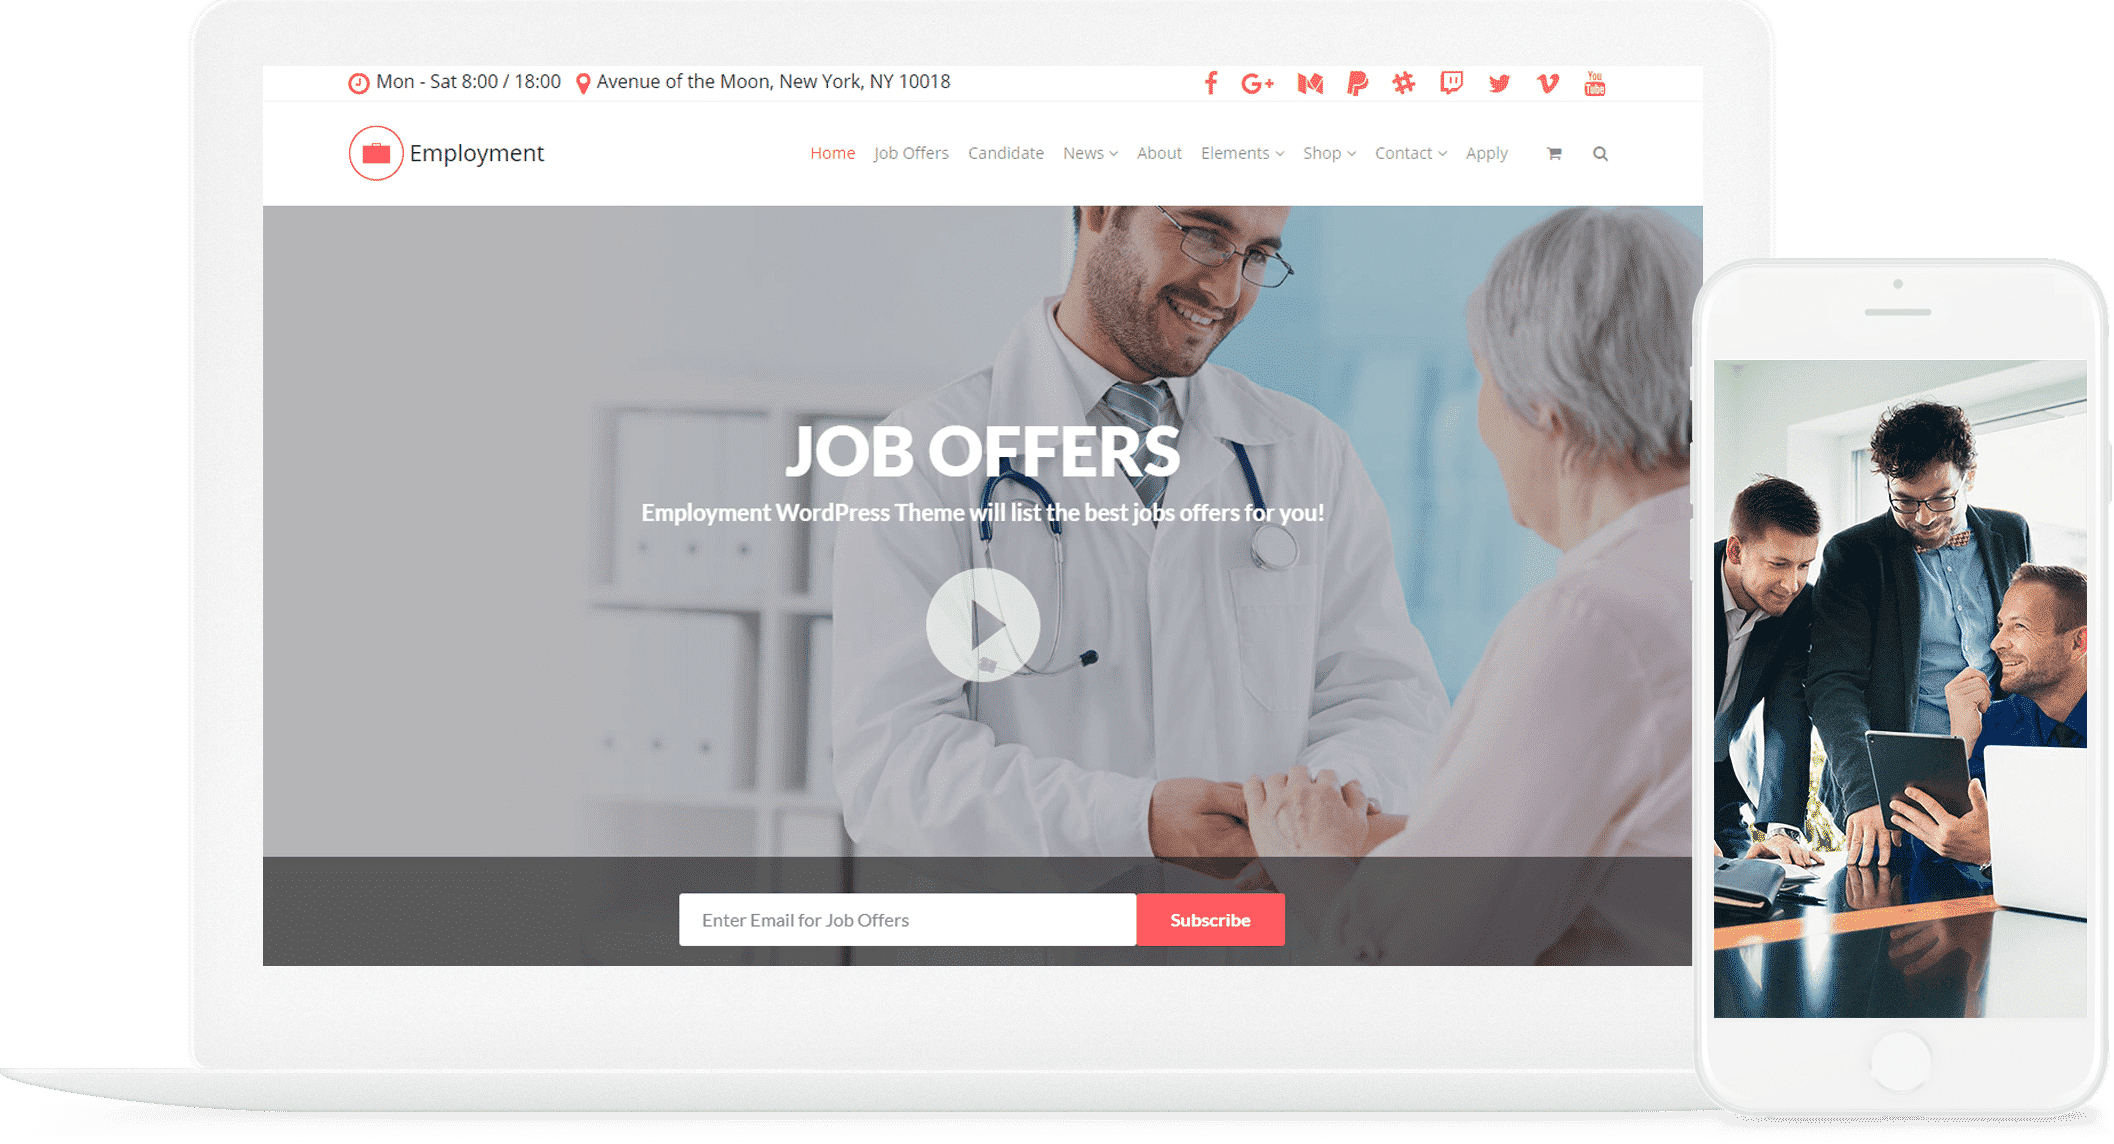 Employment WordPress Theme - Job Portal Template by Visualmodo